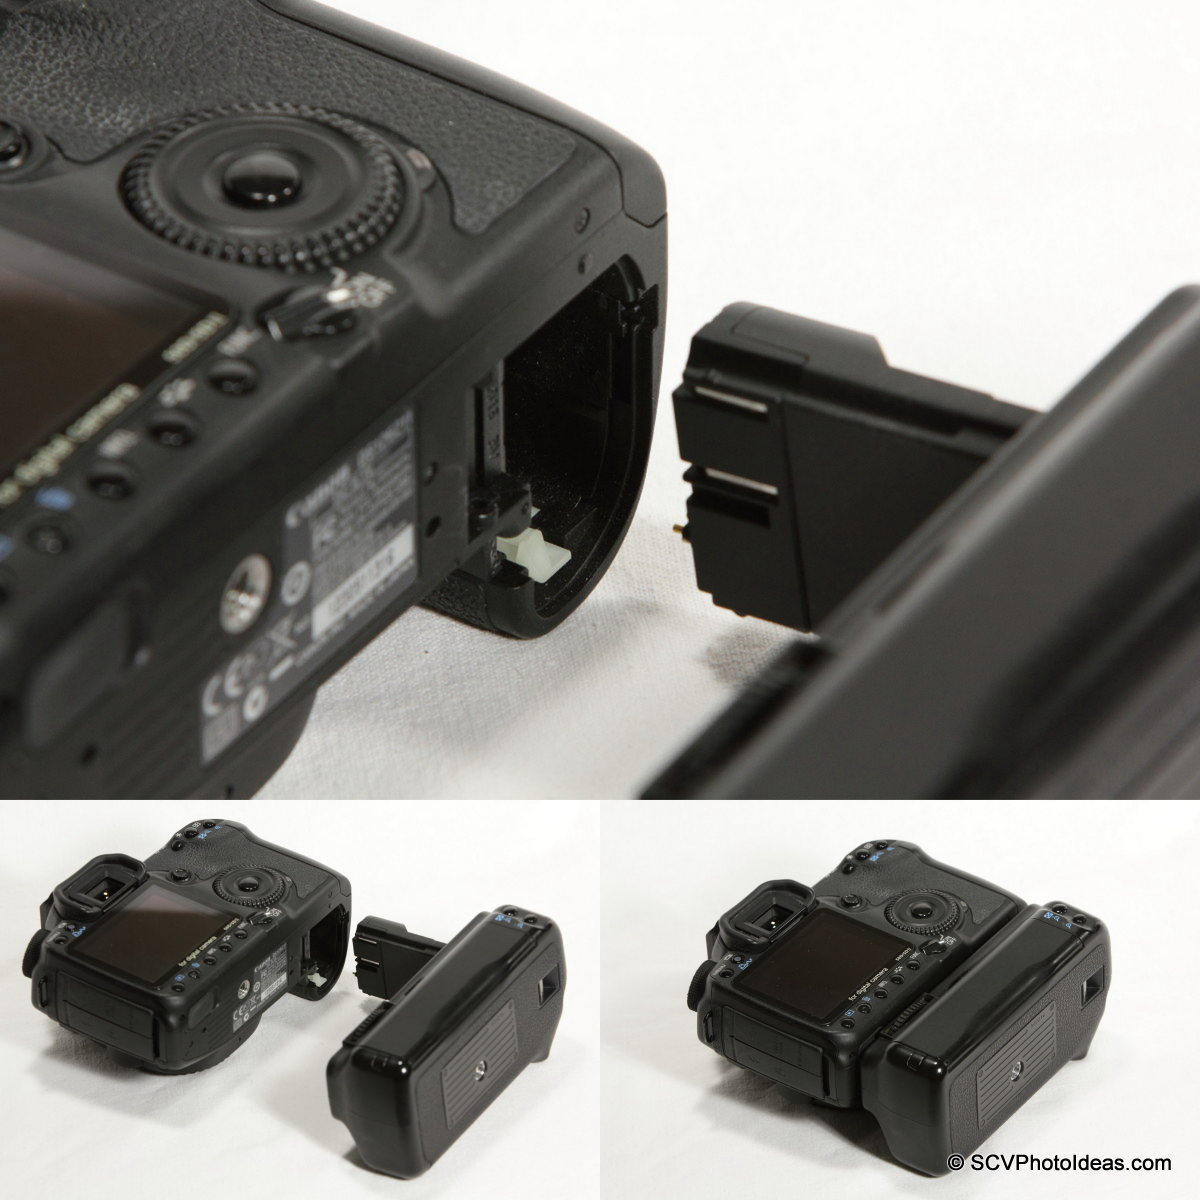 Canon BG-E2N Battery Grip mounting sequence